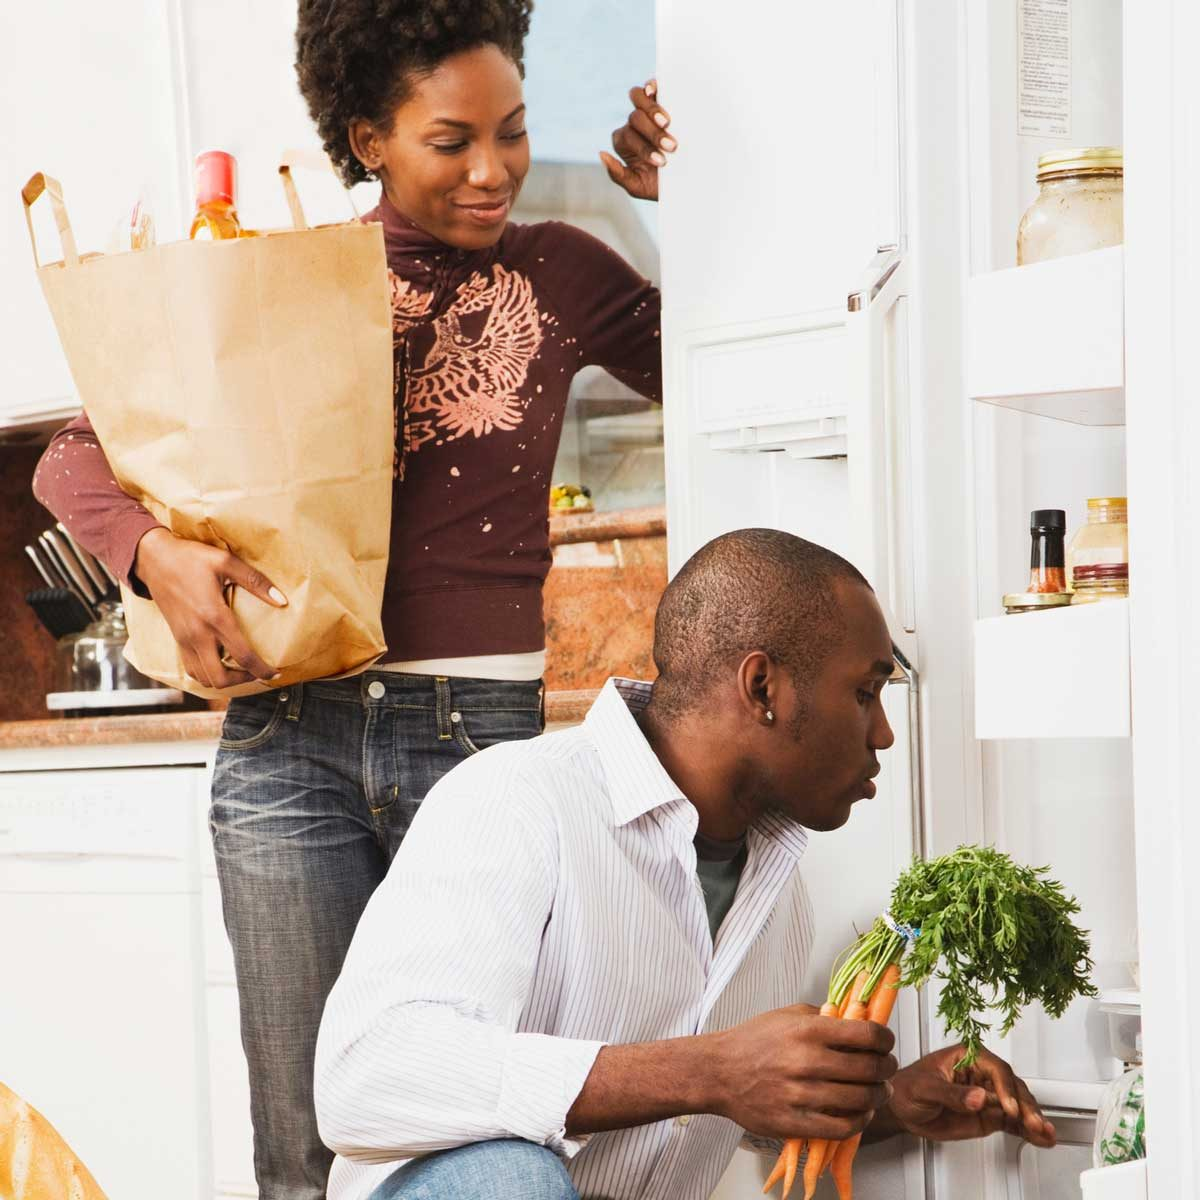 Homeowner's Guide to Organizing Your Kitchen